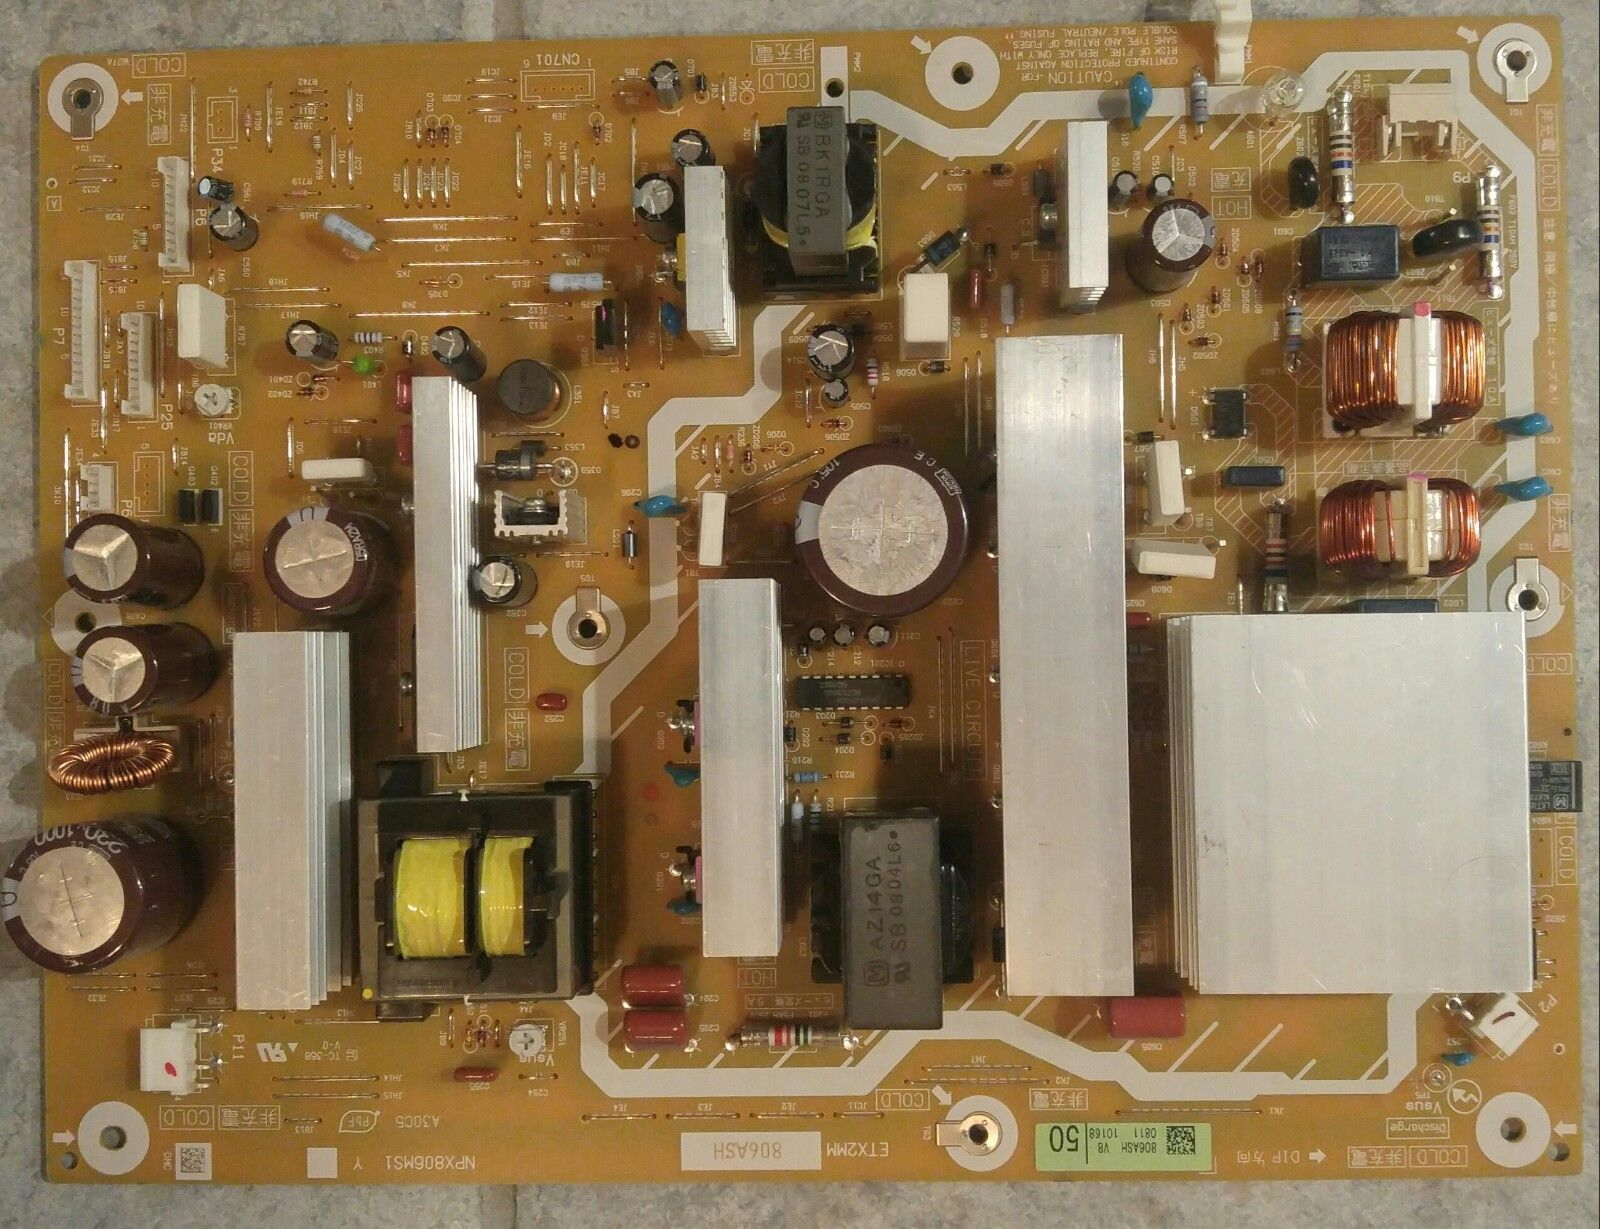 NEW PANASONIC TCP50G25 TV POWER SUPPLY BOARD ETX2MM806ASH NPX806MS1Y